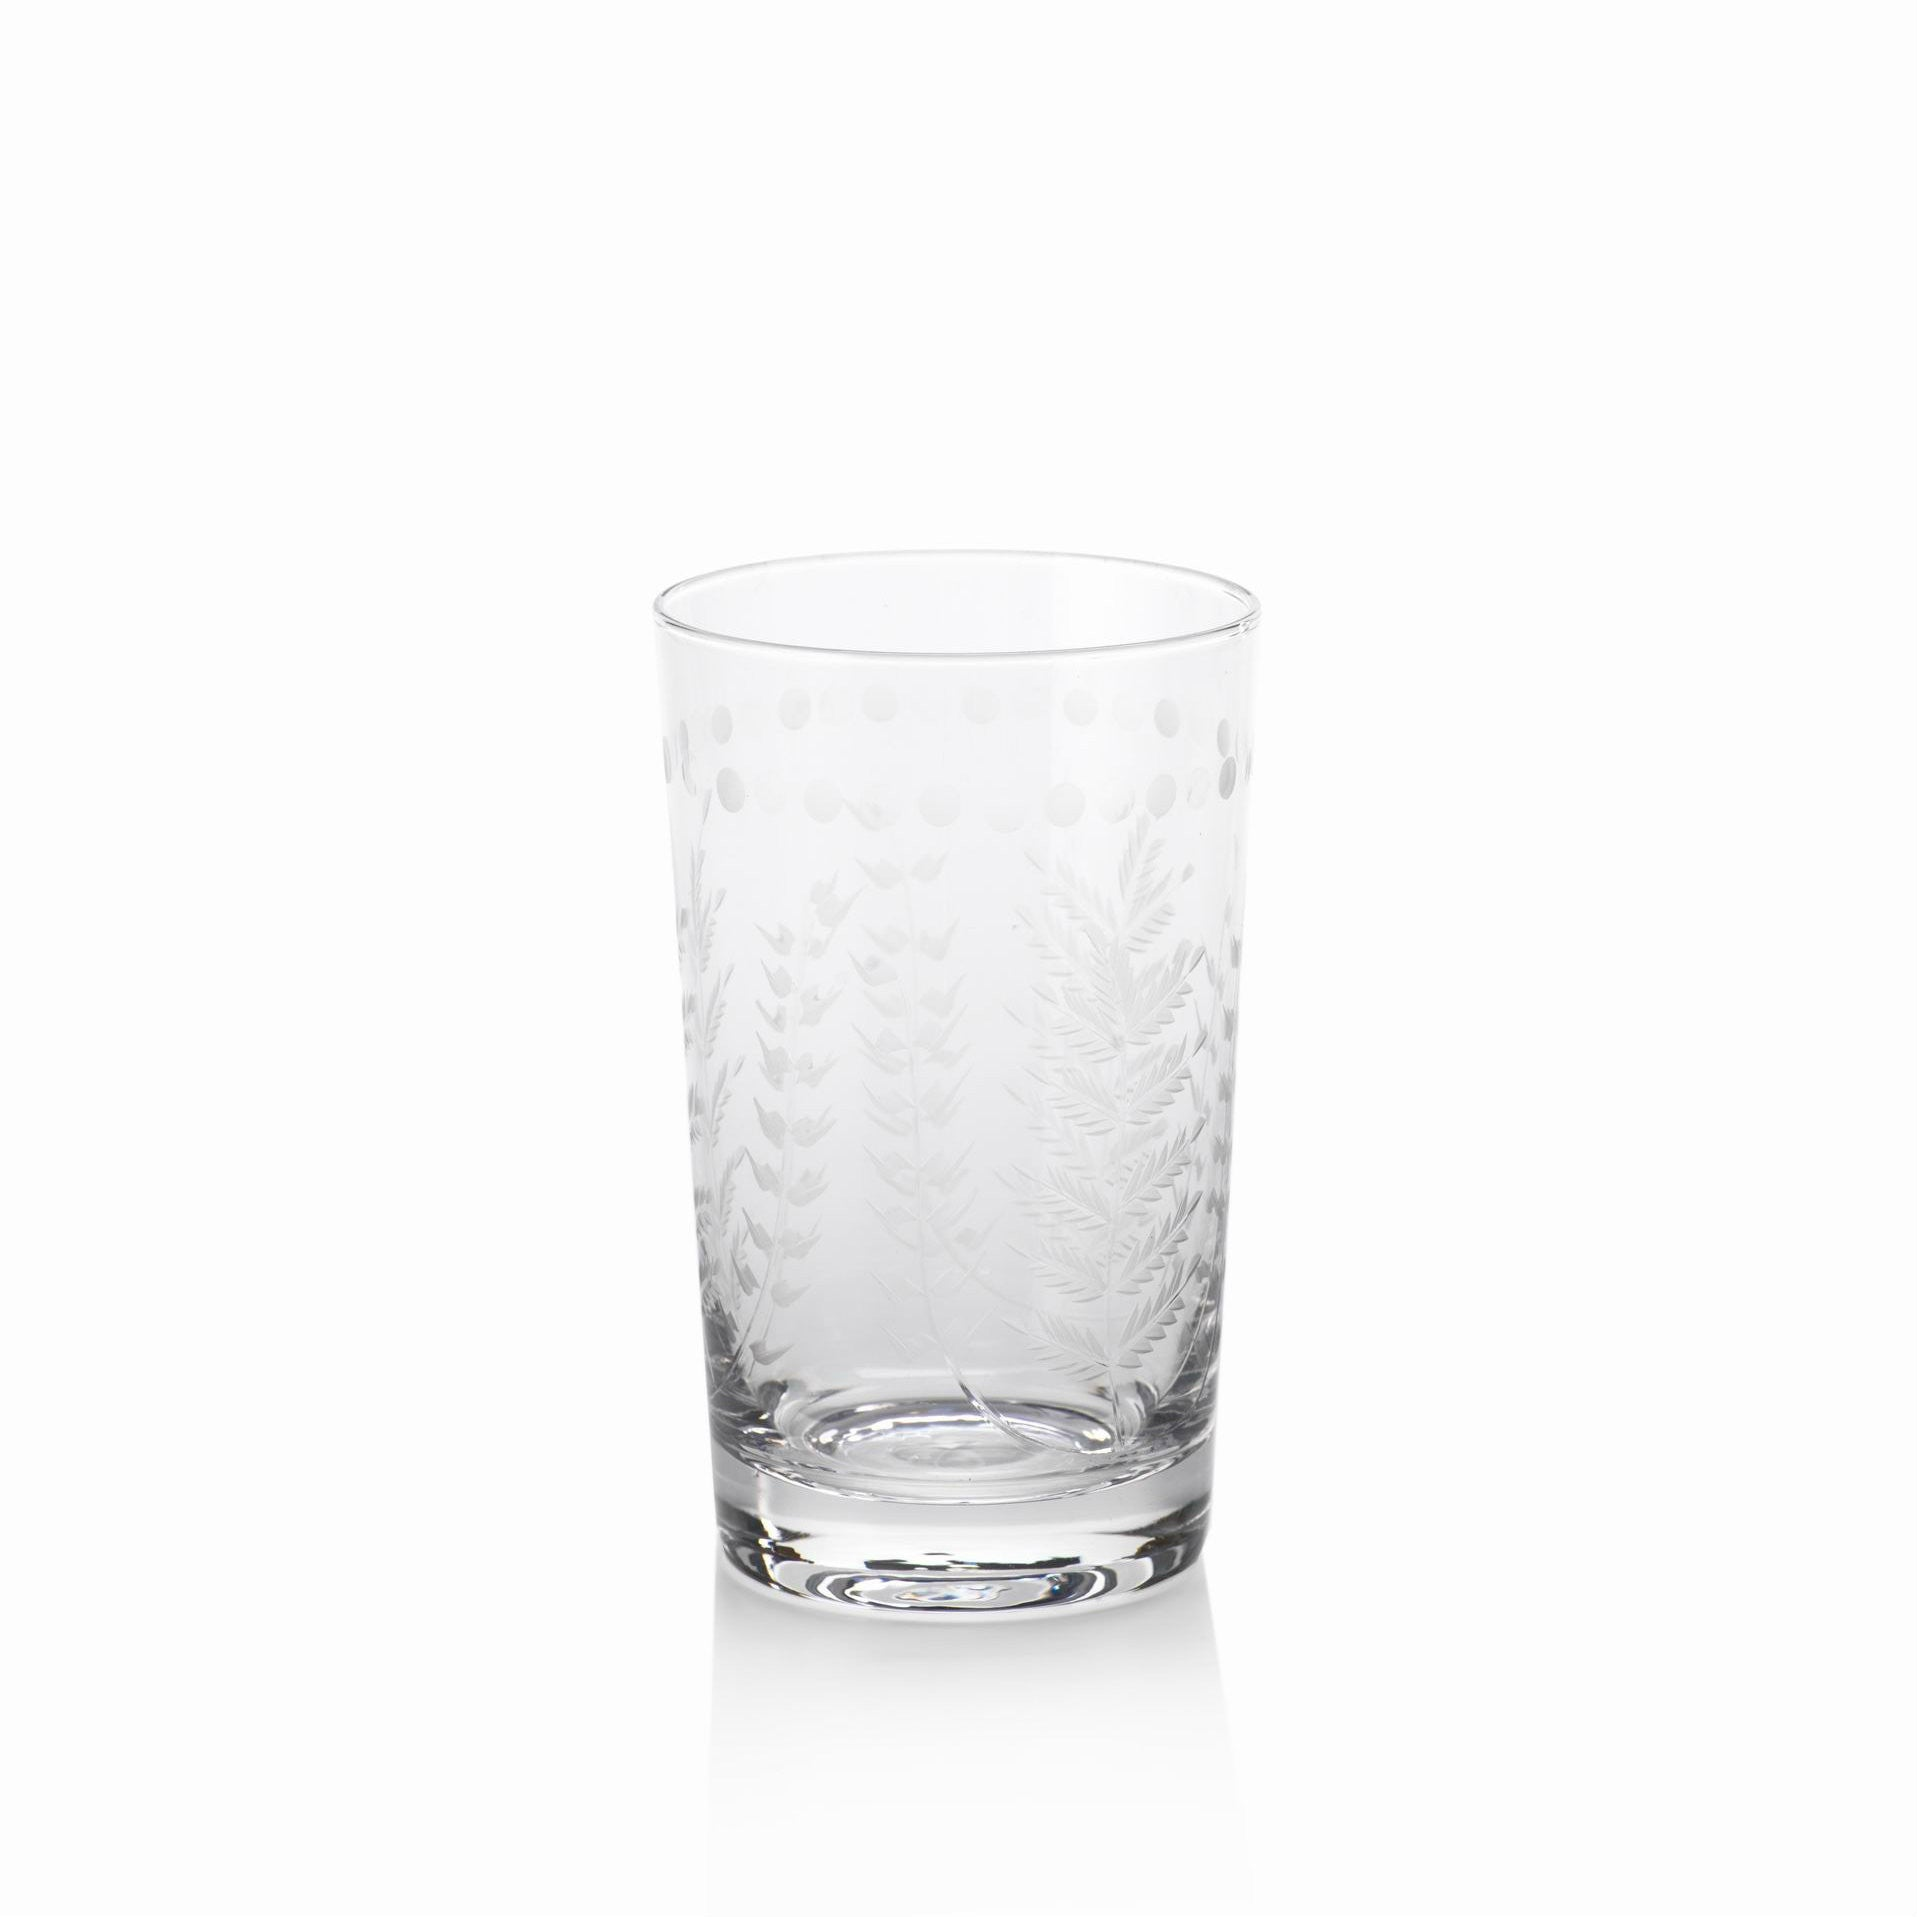 Spring Leaves Glassware - Set of 4 - CARLYLE AVENUE